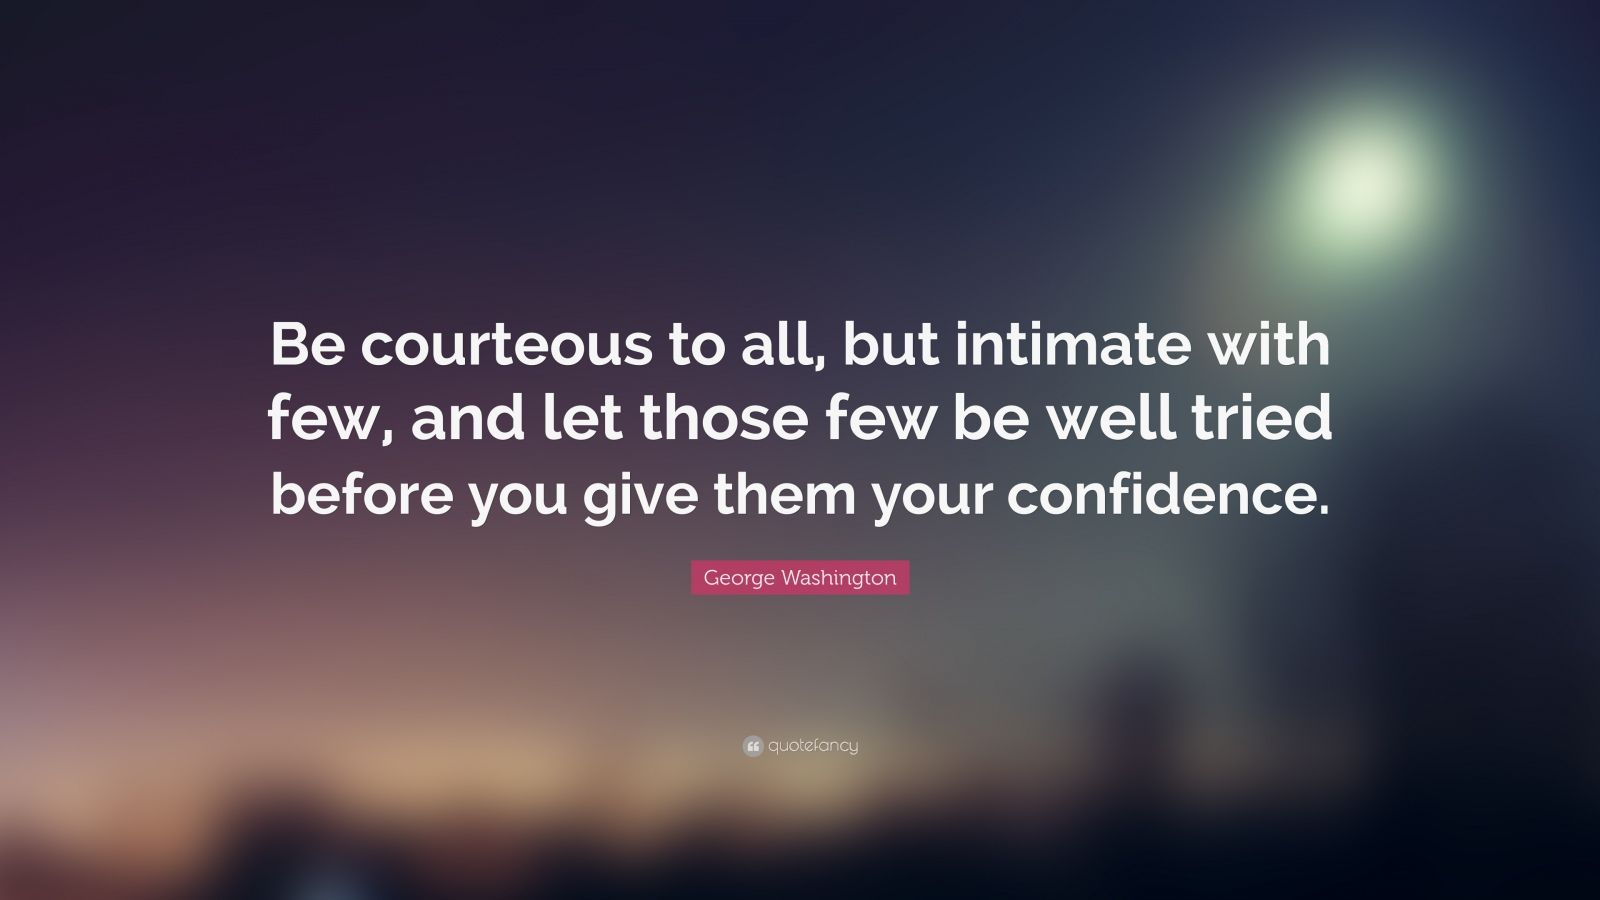 """George Washington Quote: """"Be courteous to all, but intimate with few, and let those few be well tried before you give them your confidence."""""""